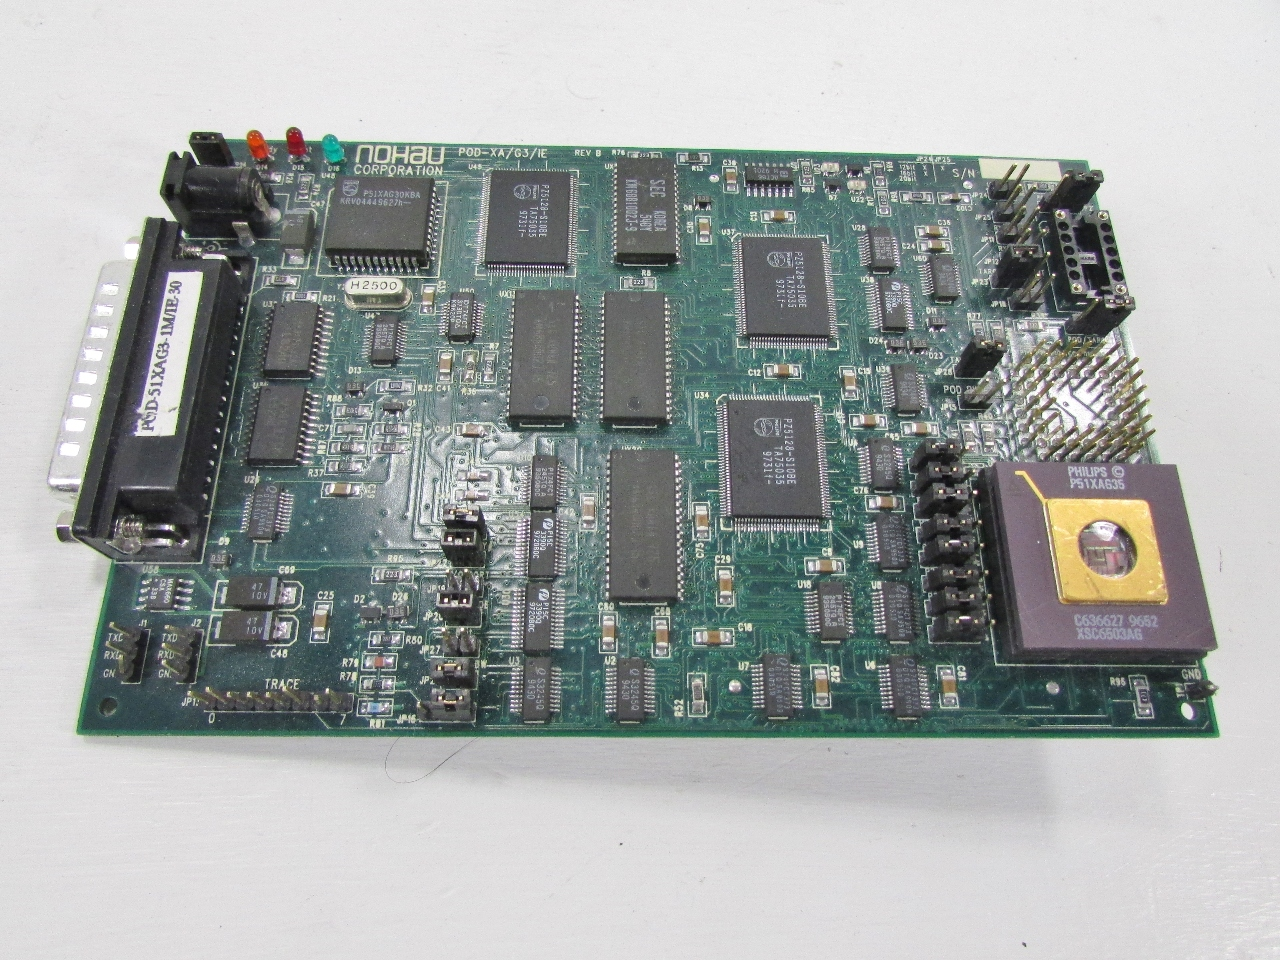 * NOHAU CORPORATION POD-XA/G3/IE POD BOARD #2 | Premier Equipment Solutions, Inc.